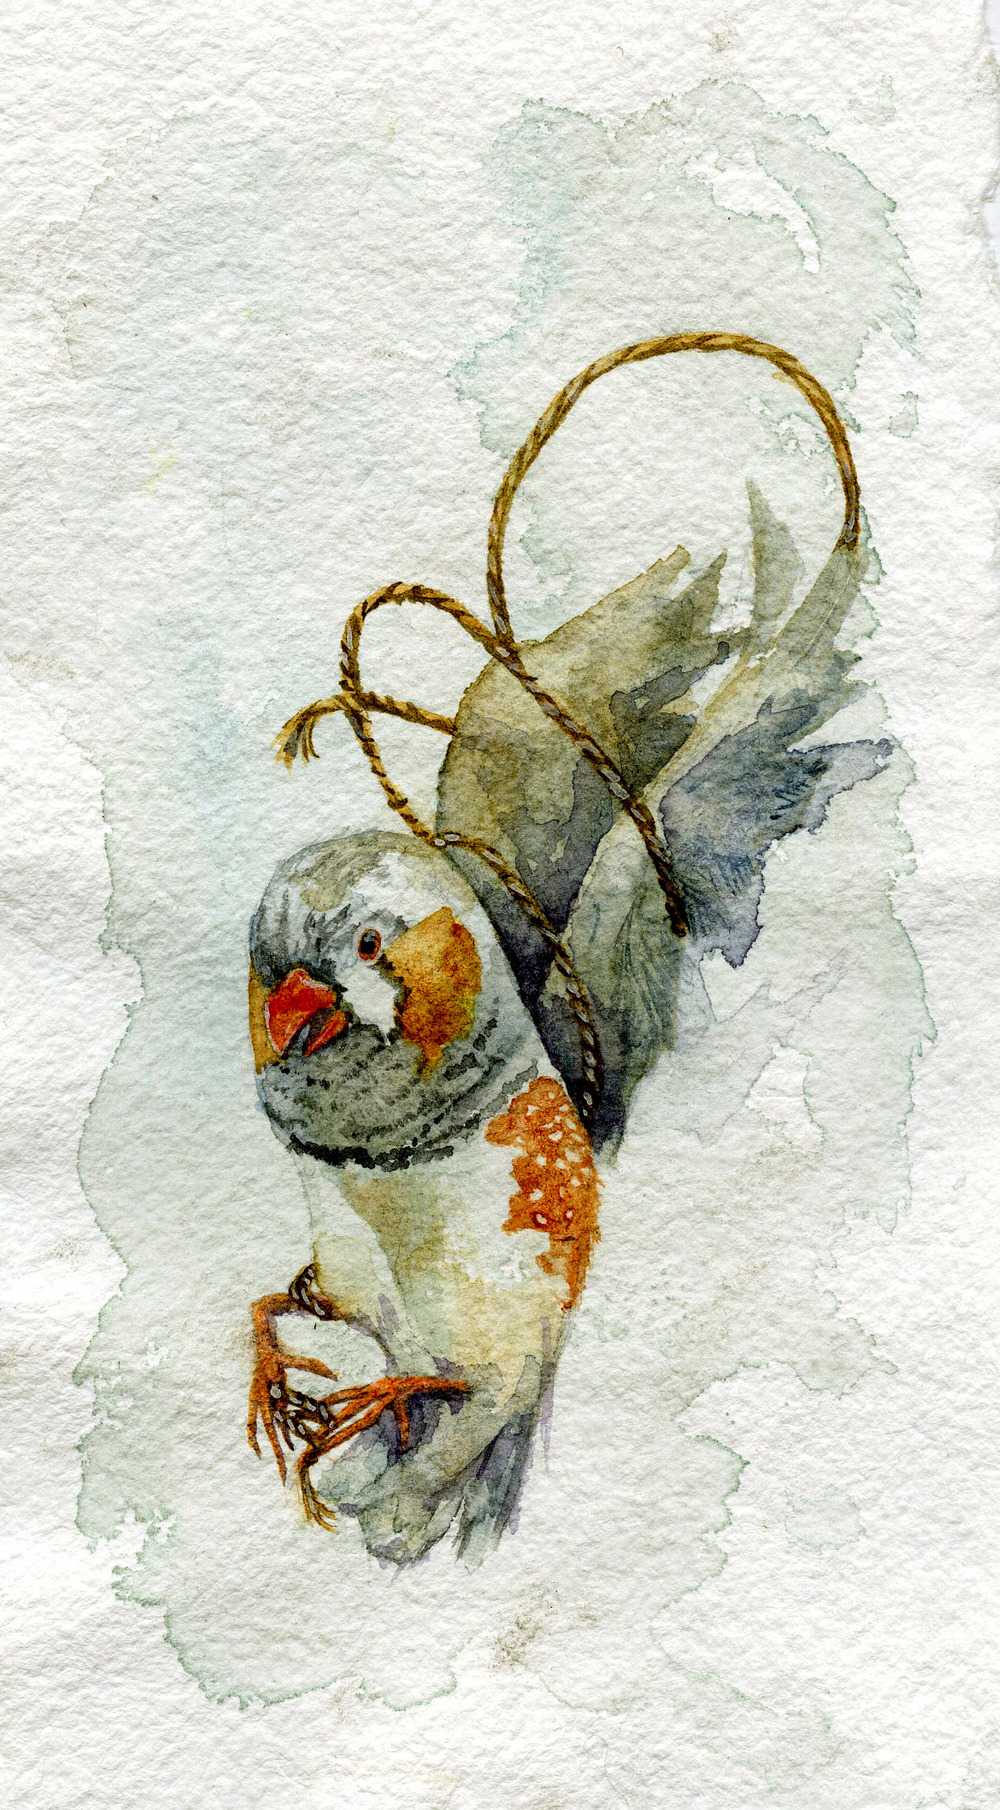 Parakeet  Watercolor on paper 2014  Freedom of movement gets restricted when bird owners decide to clip their pet's wings.